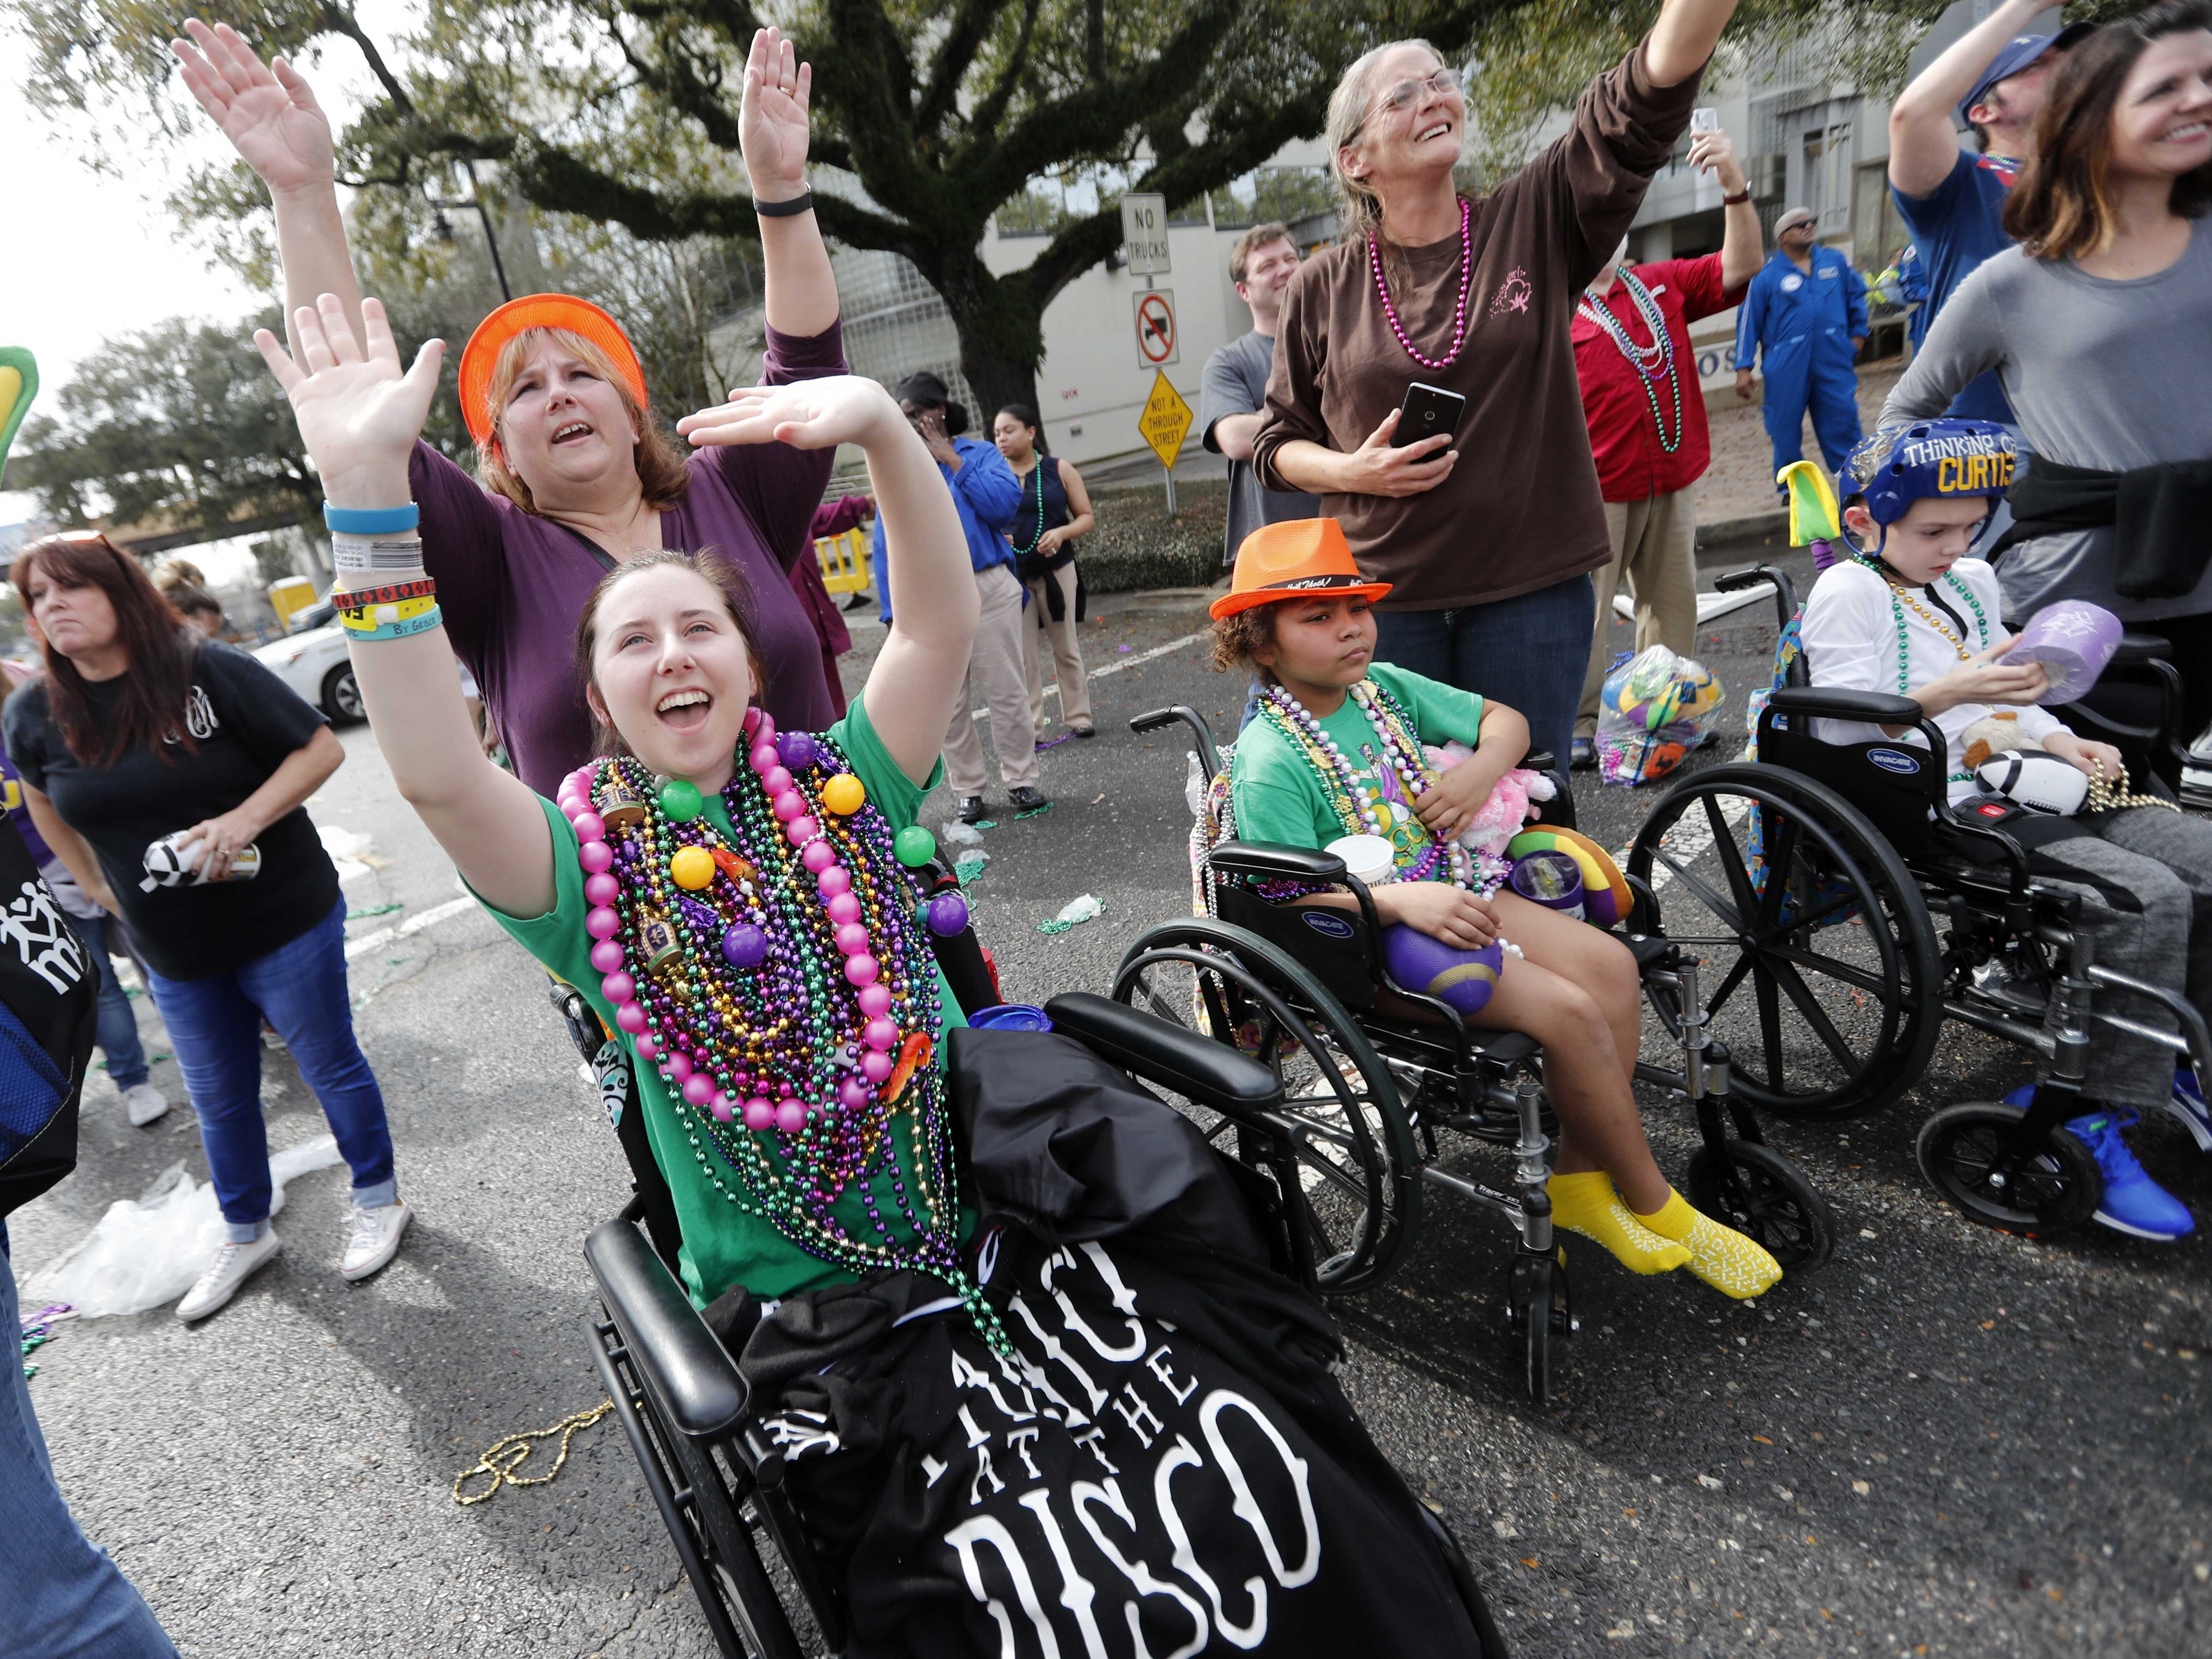 Mardis Gras Parade Honors New Orleans' Tricentennial